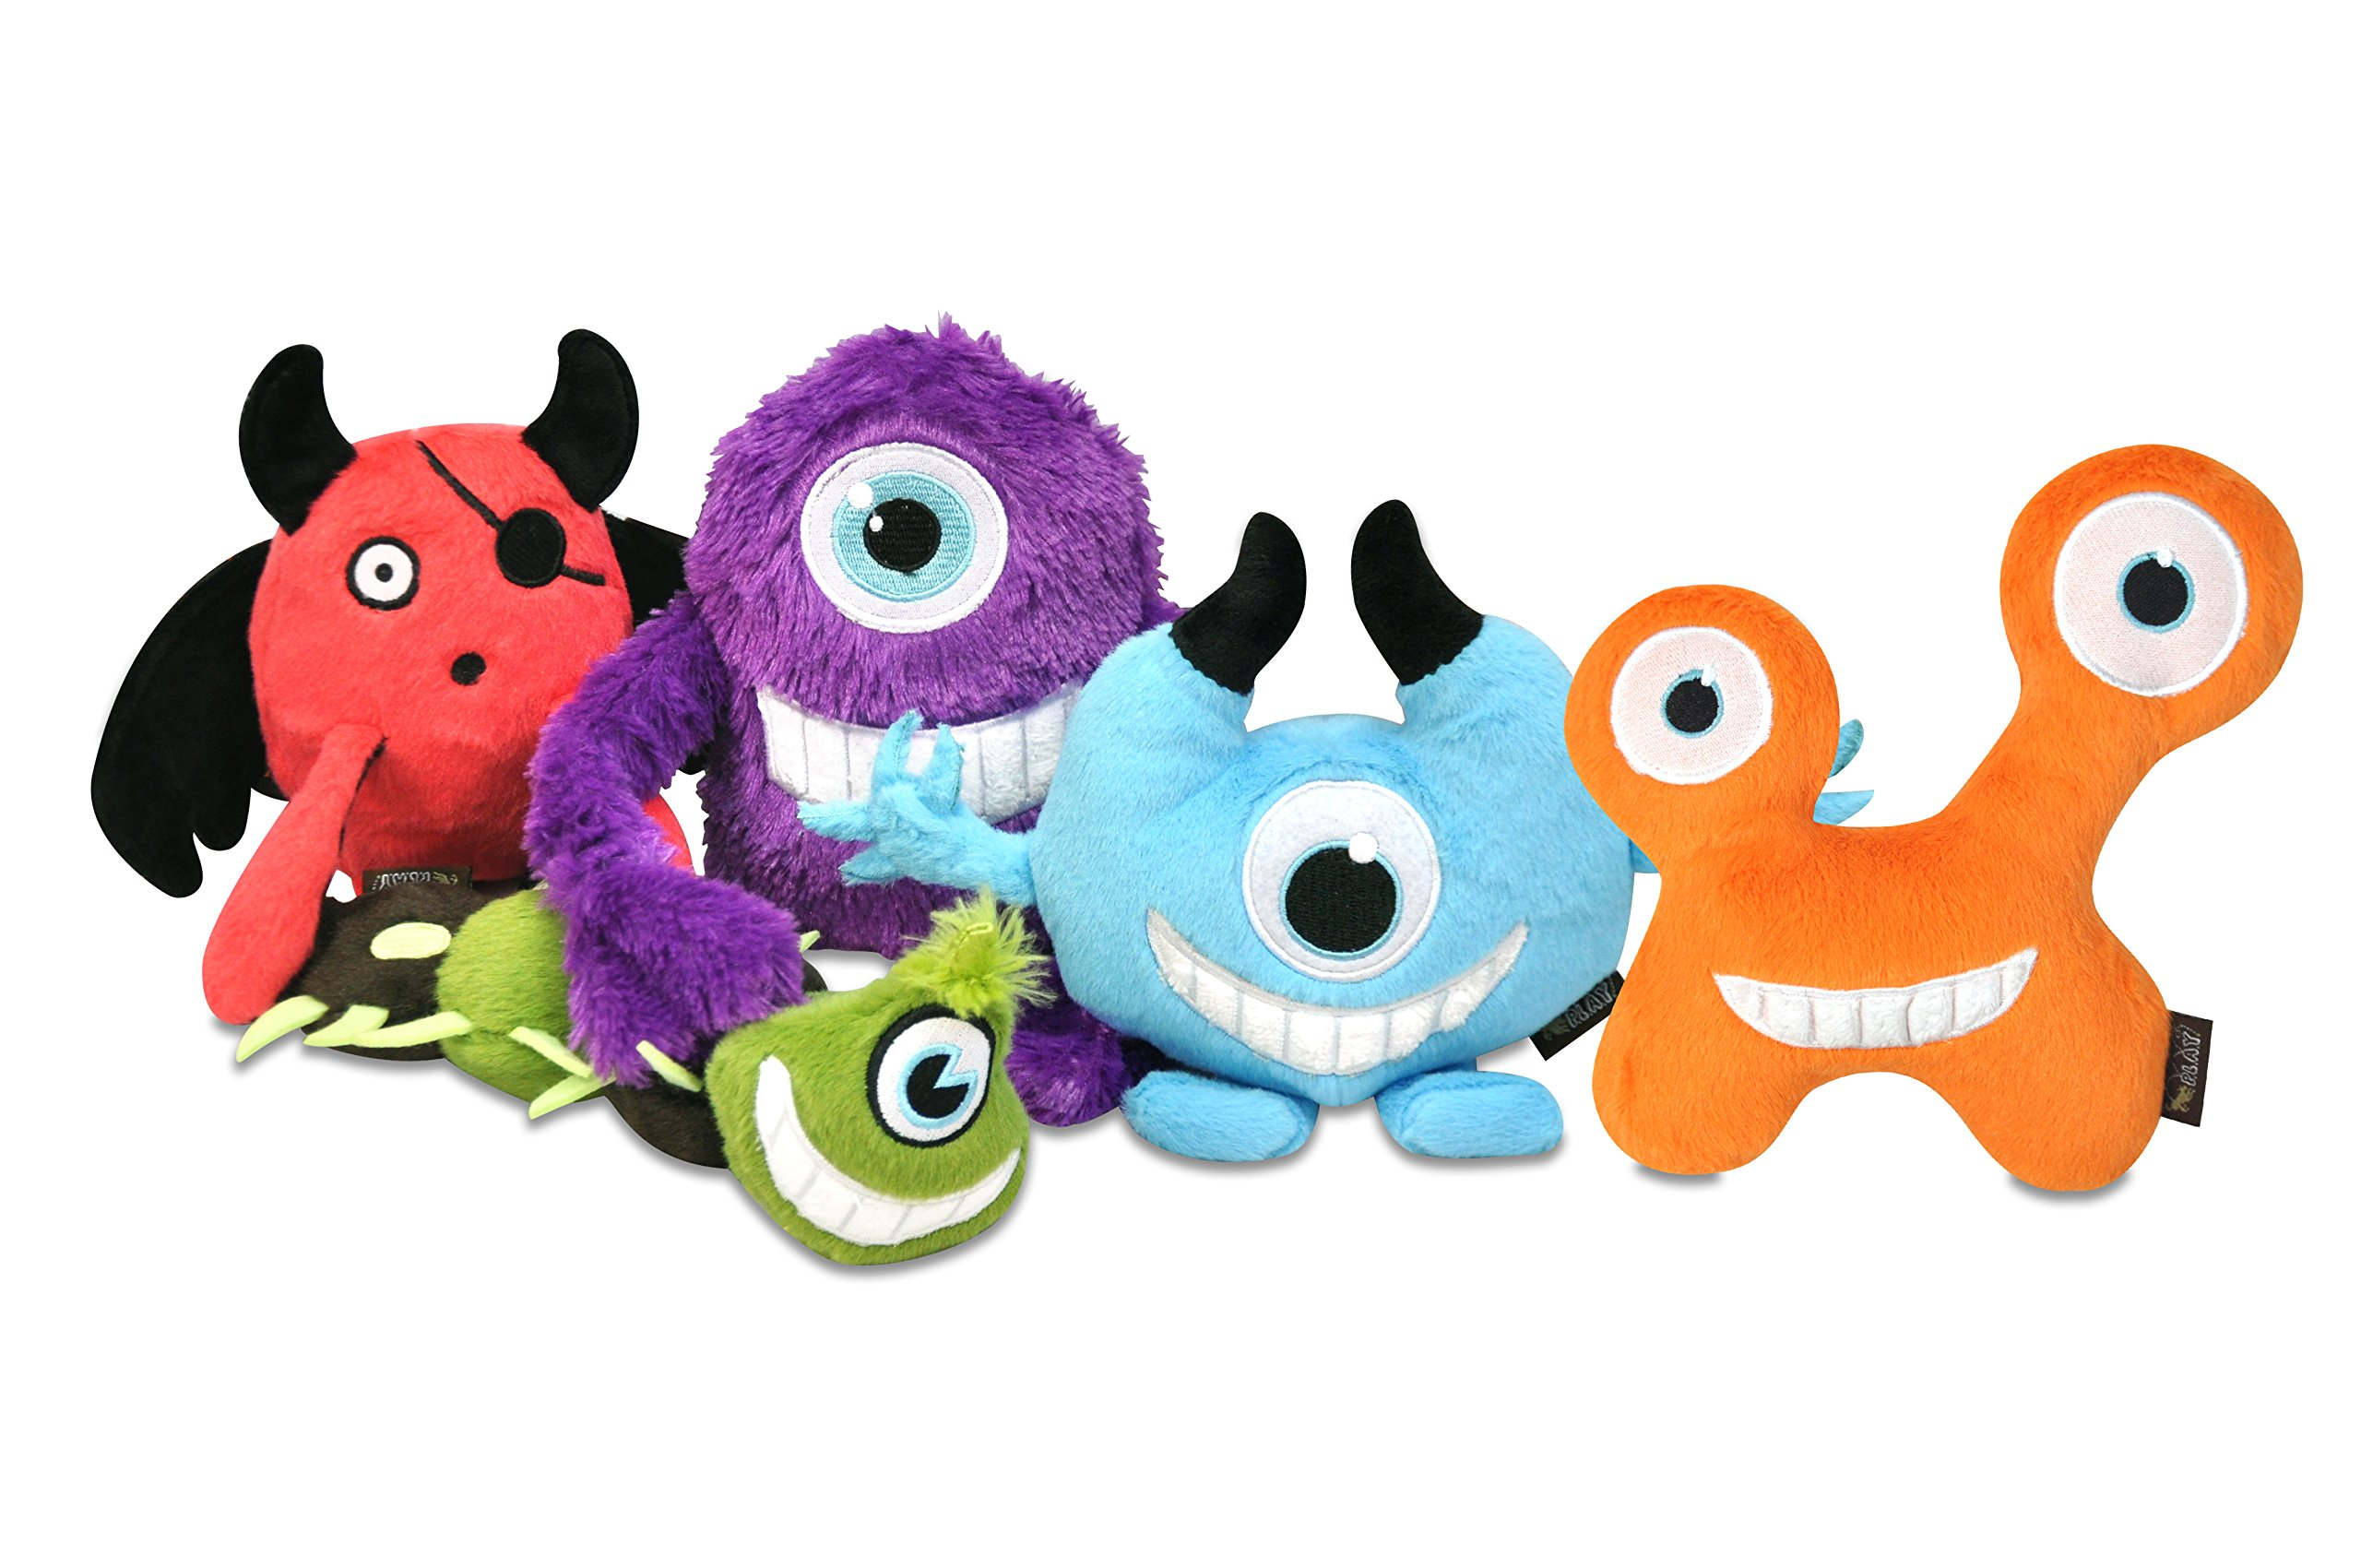 P.L.A.Y. PET LIFESTYLE AND YOU P.L.A.Y. - Dog Plush Toy with Squeaker Monster Set by P.L.A.Y. PET LIFESTYLE AND YOU